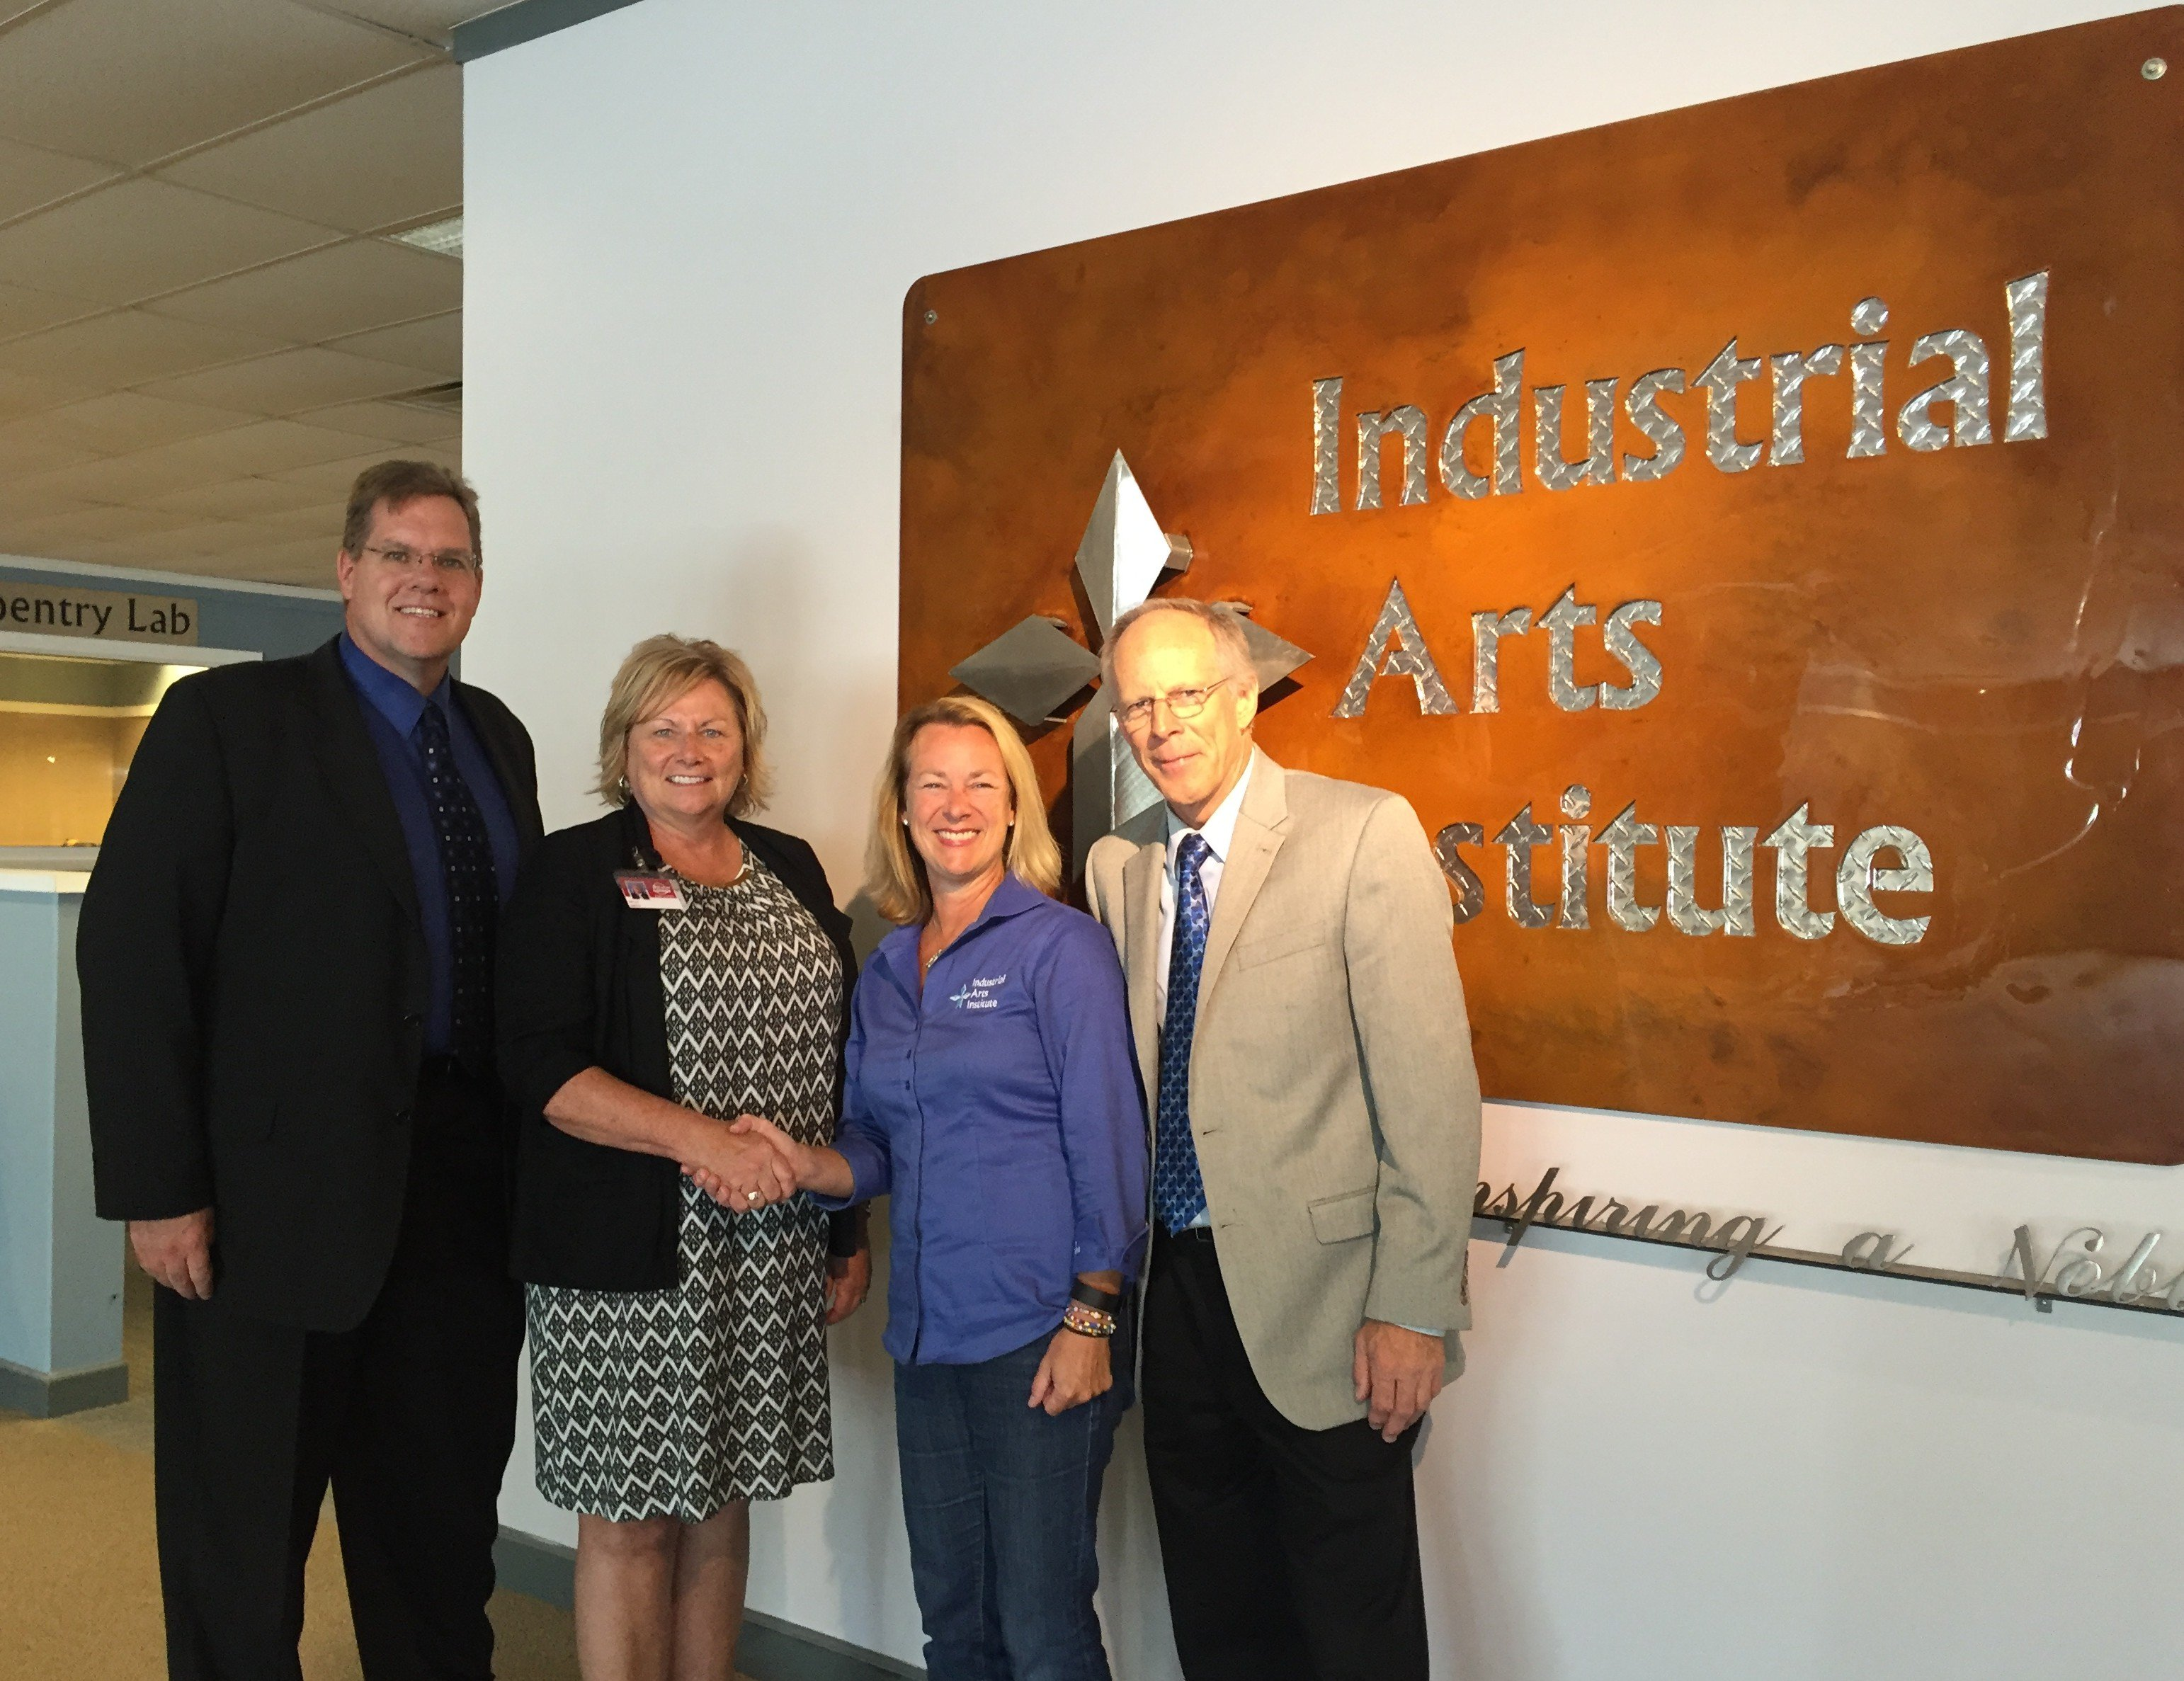 Industrial Arts Institute and Baker College Partner on College Welding Degree